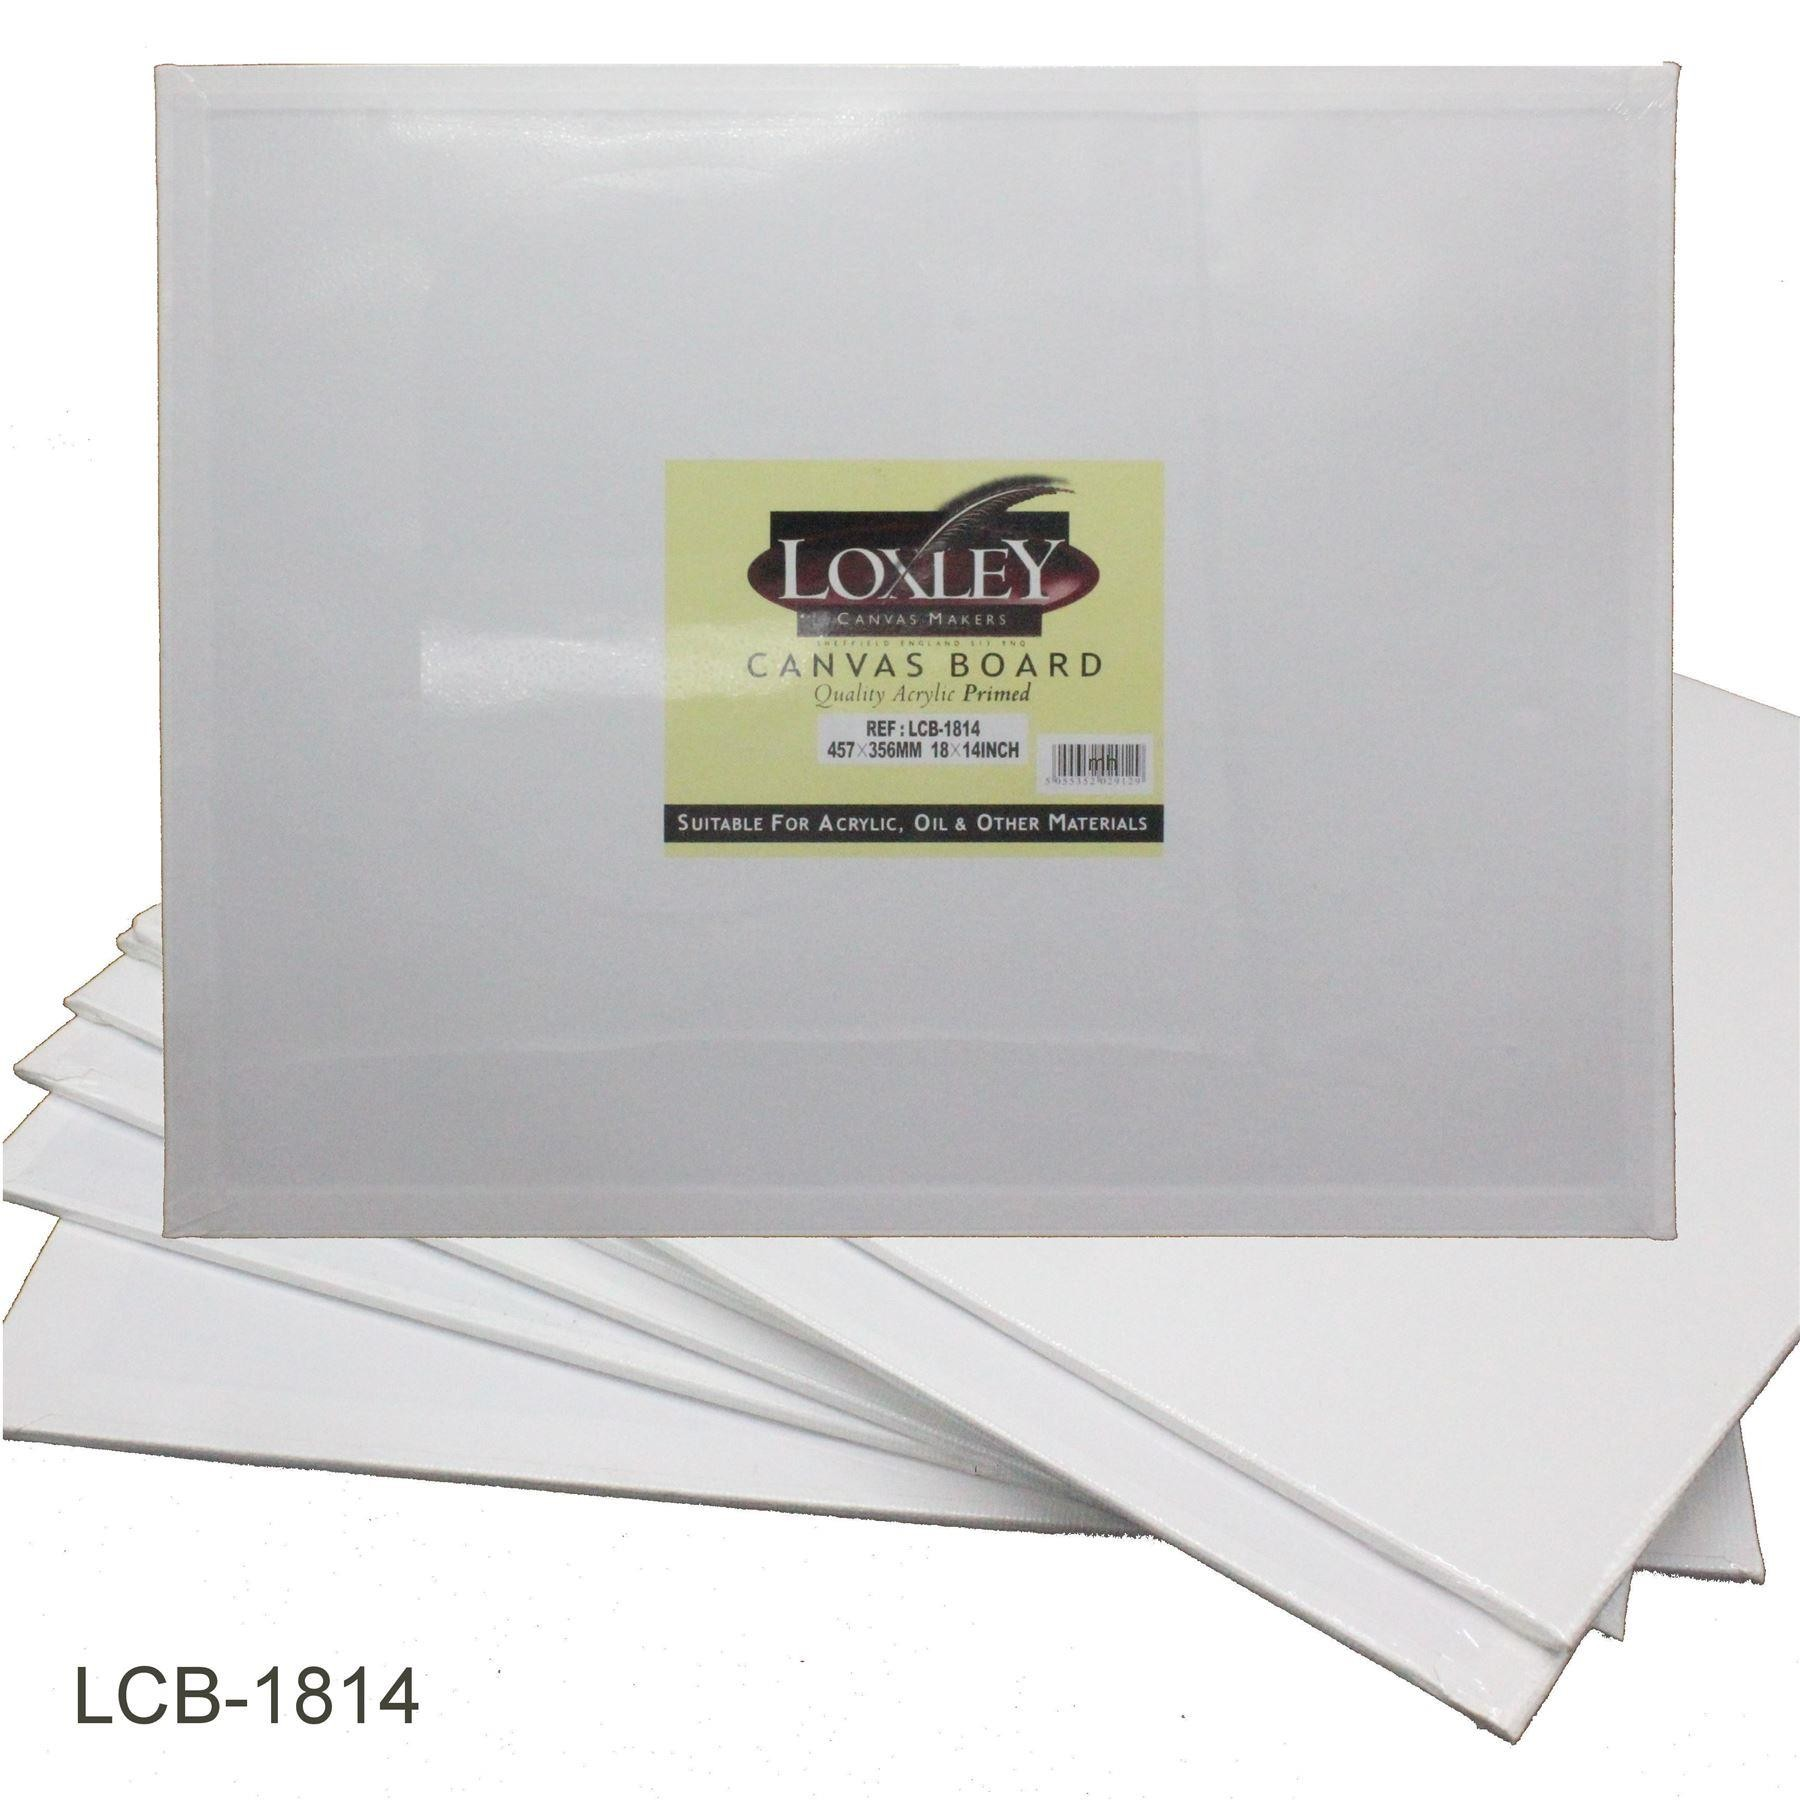 "Loxley Double Primed Acrylic Canvas Board 18"" x 14"""